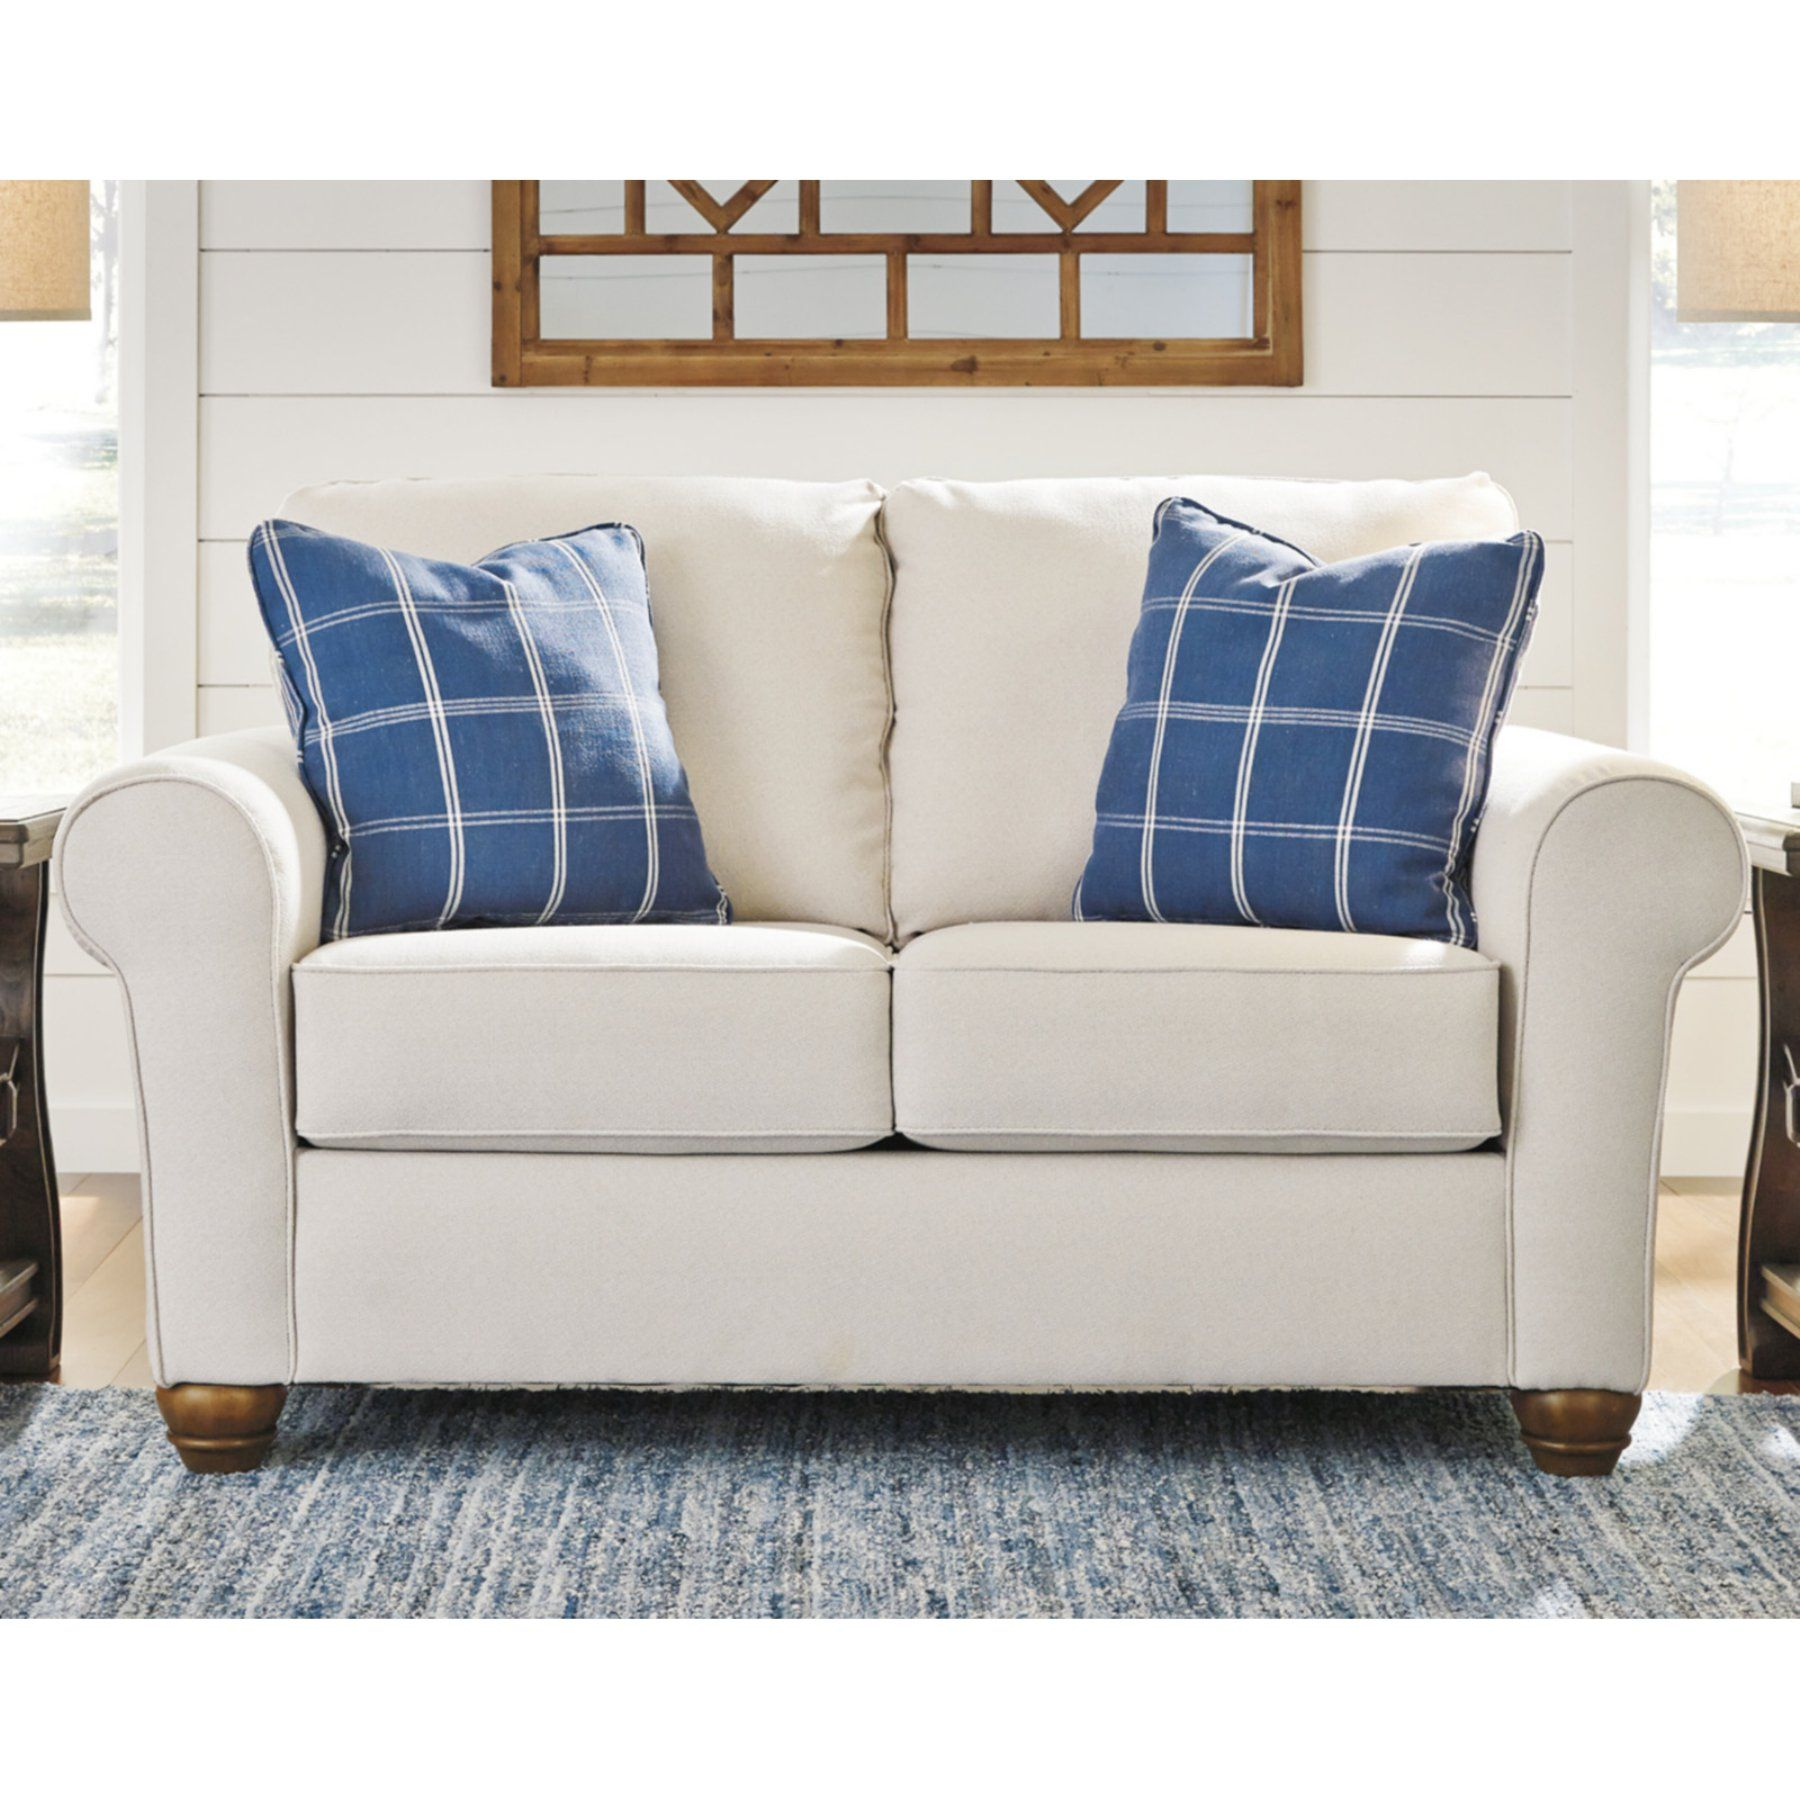 Benchcraft Adderbury Loveseat  1440335